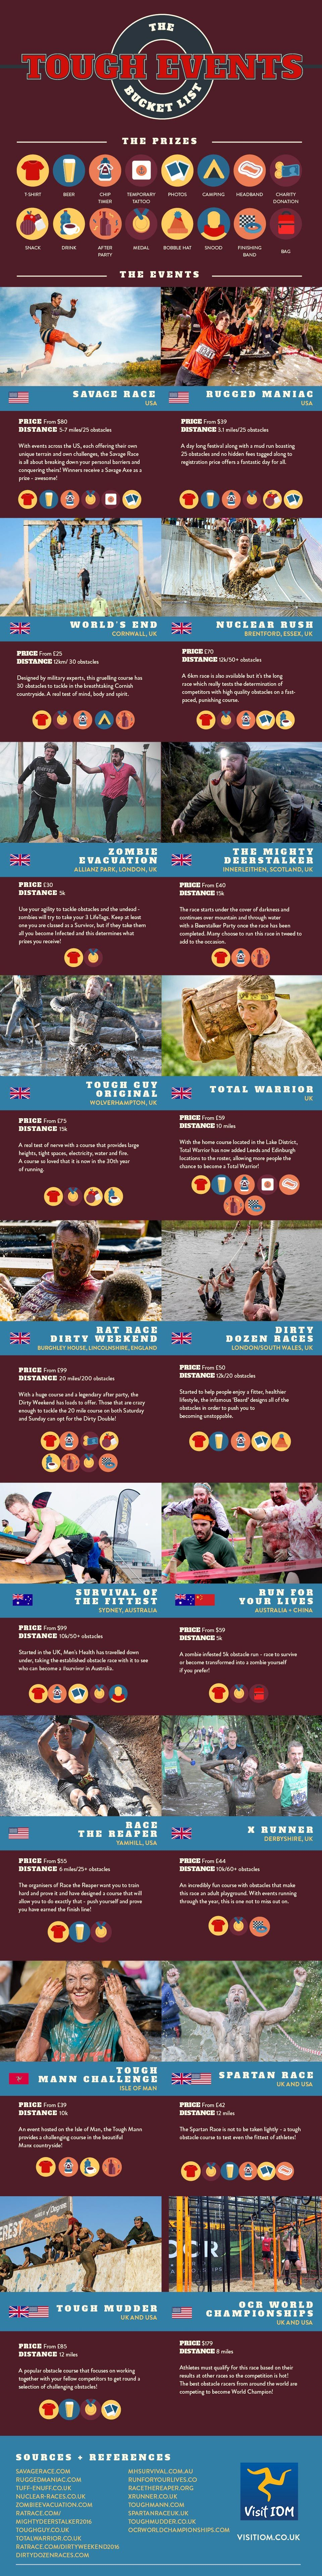 The Tough Events Bucket List #infographic